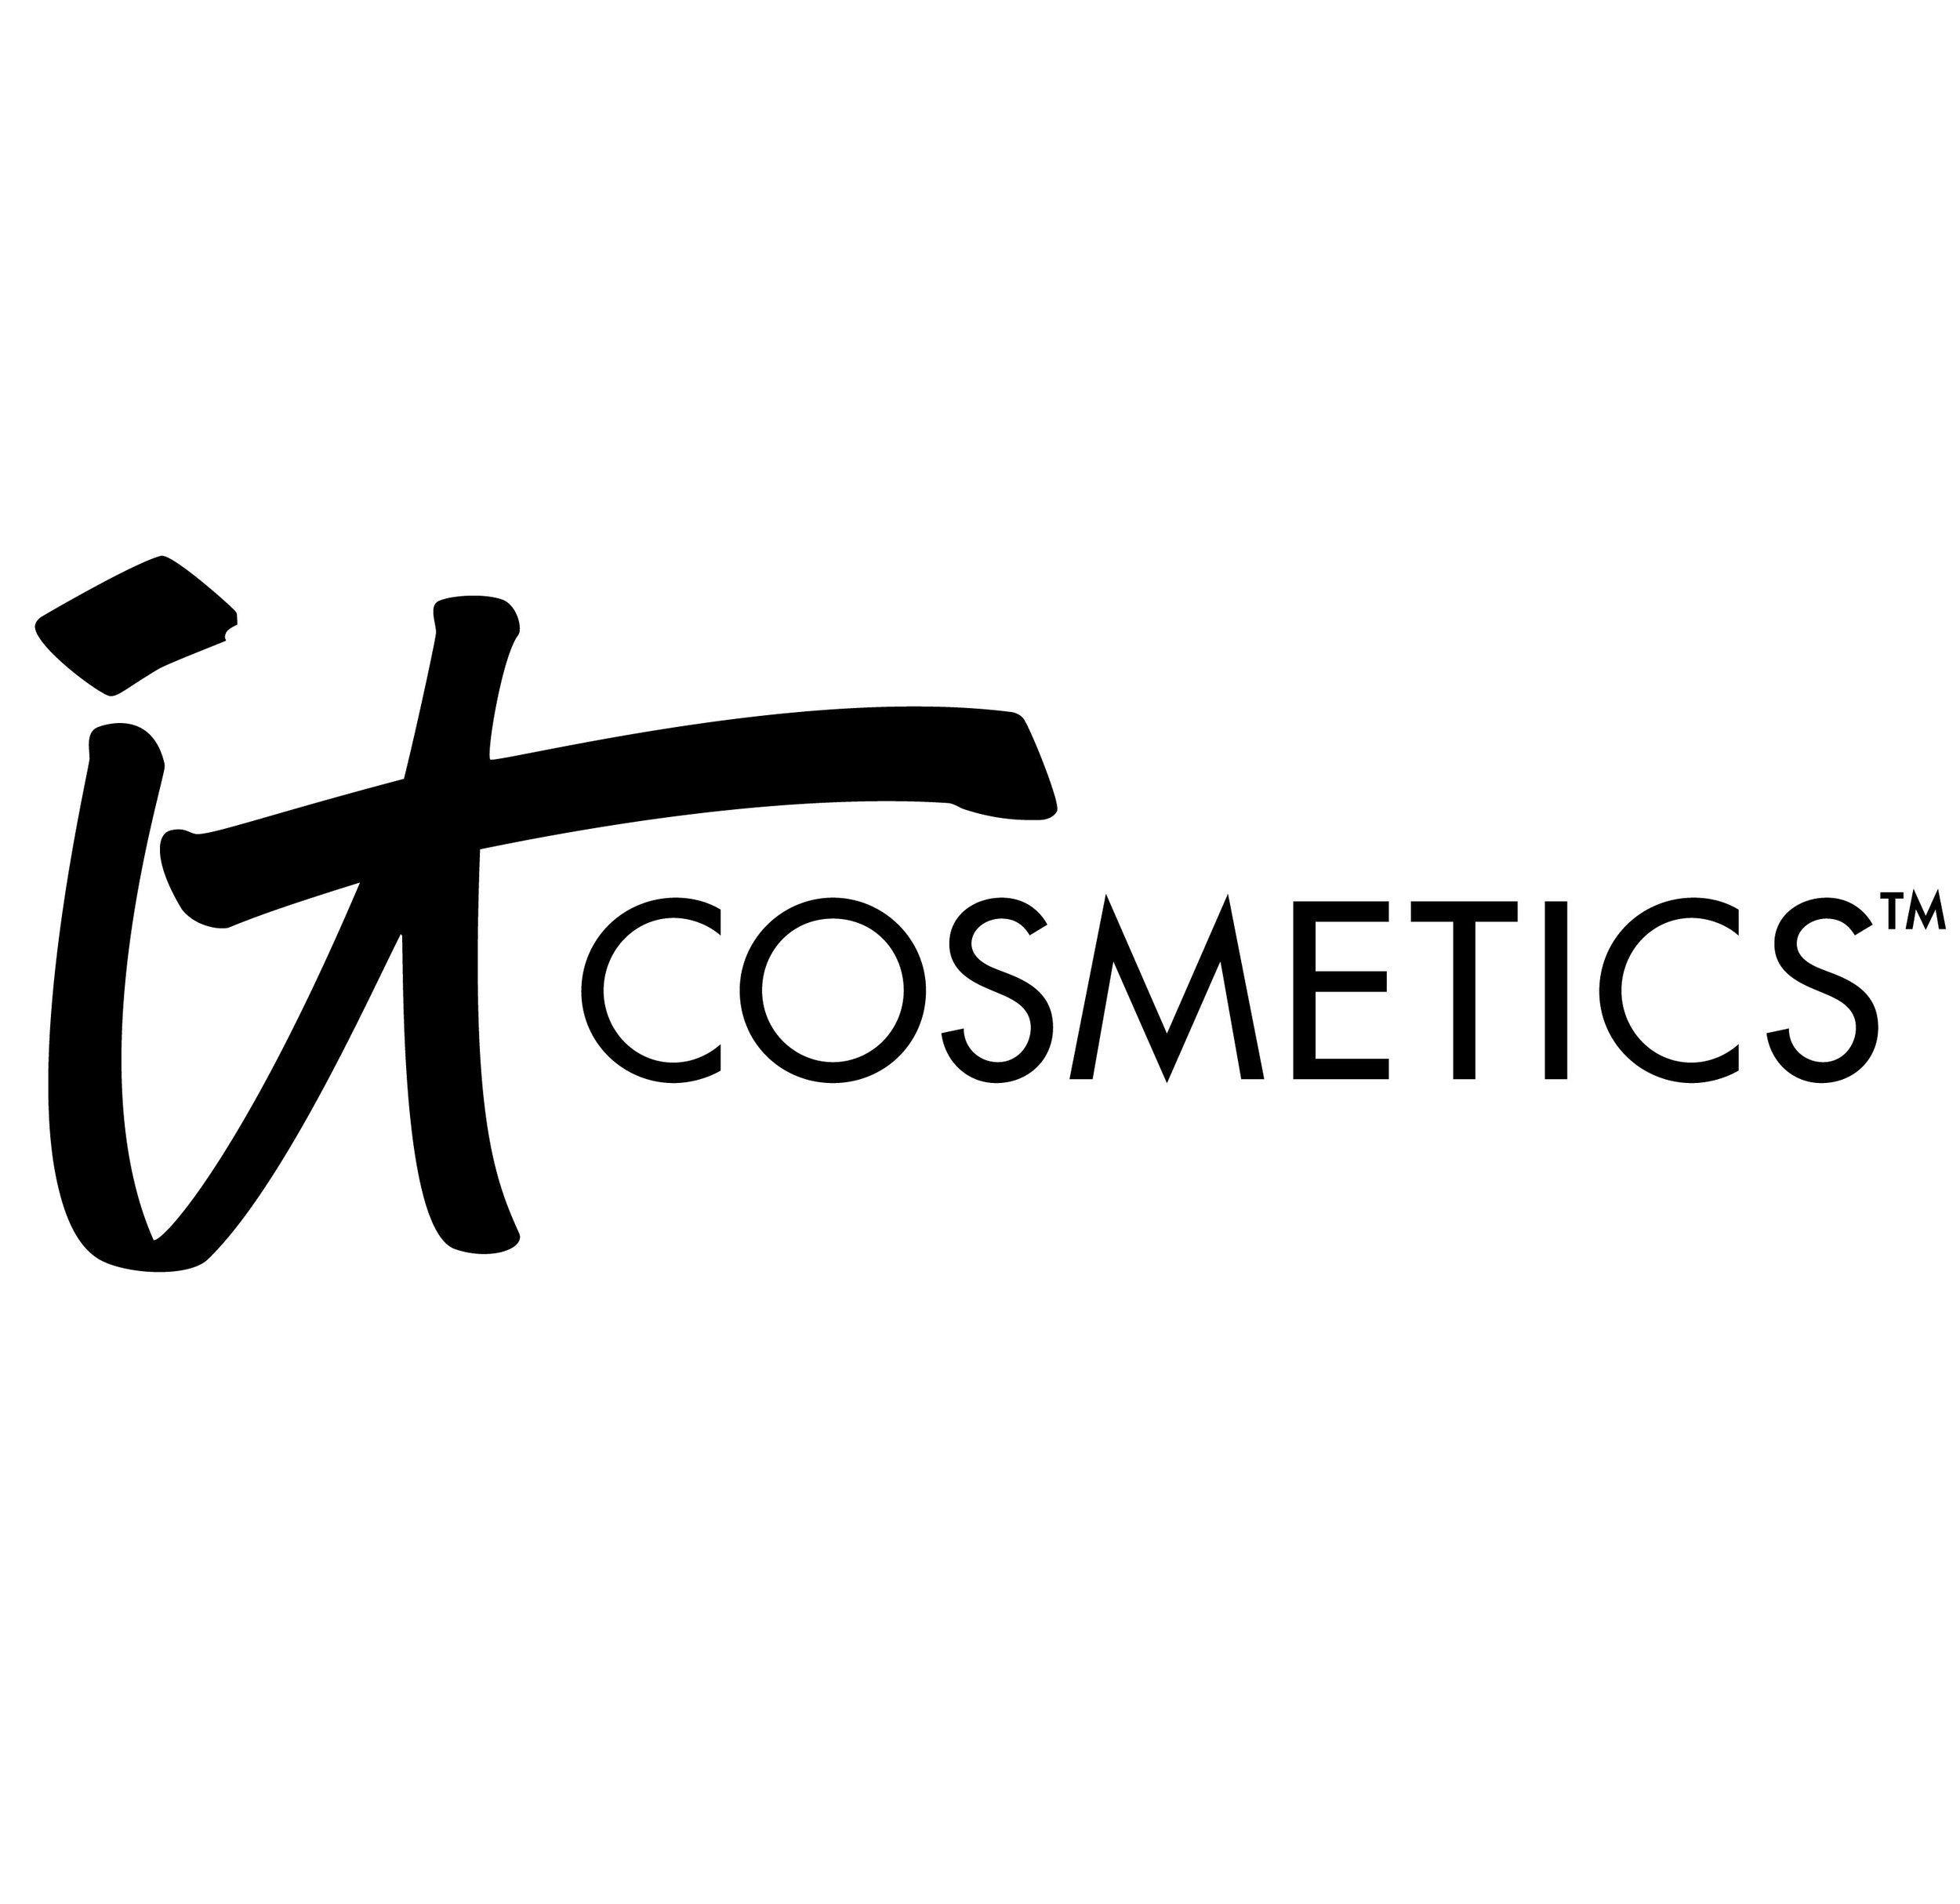 TSG Announces Investment In IT Cosmetics